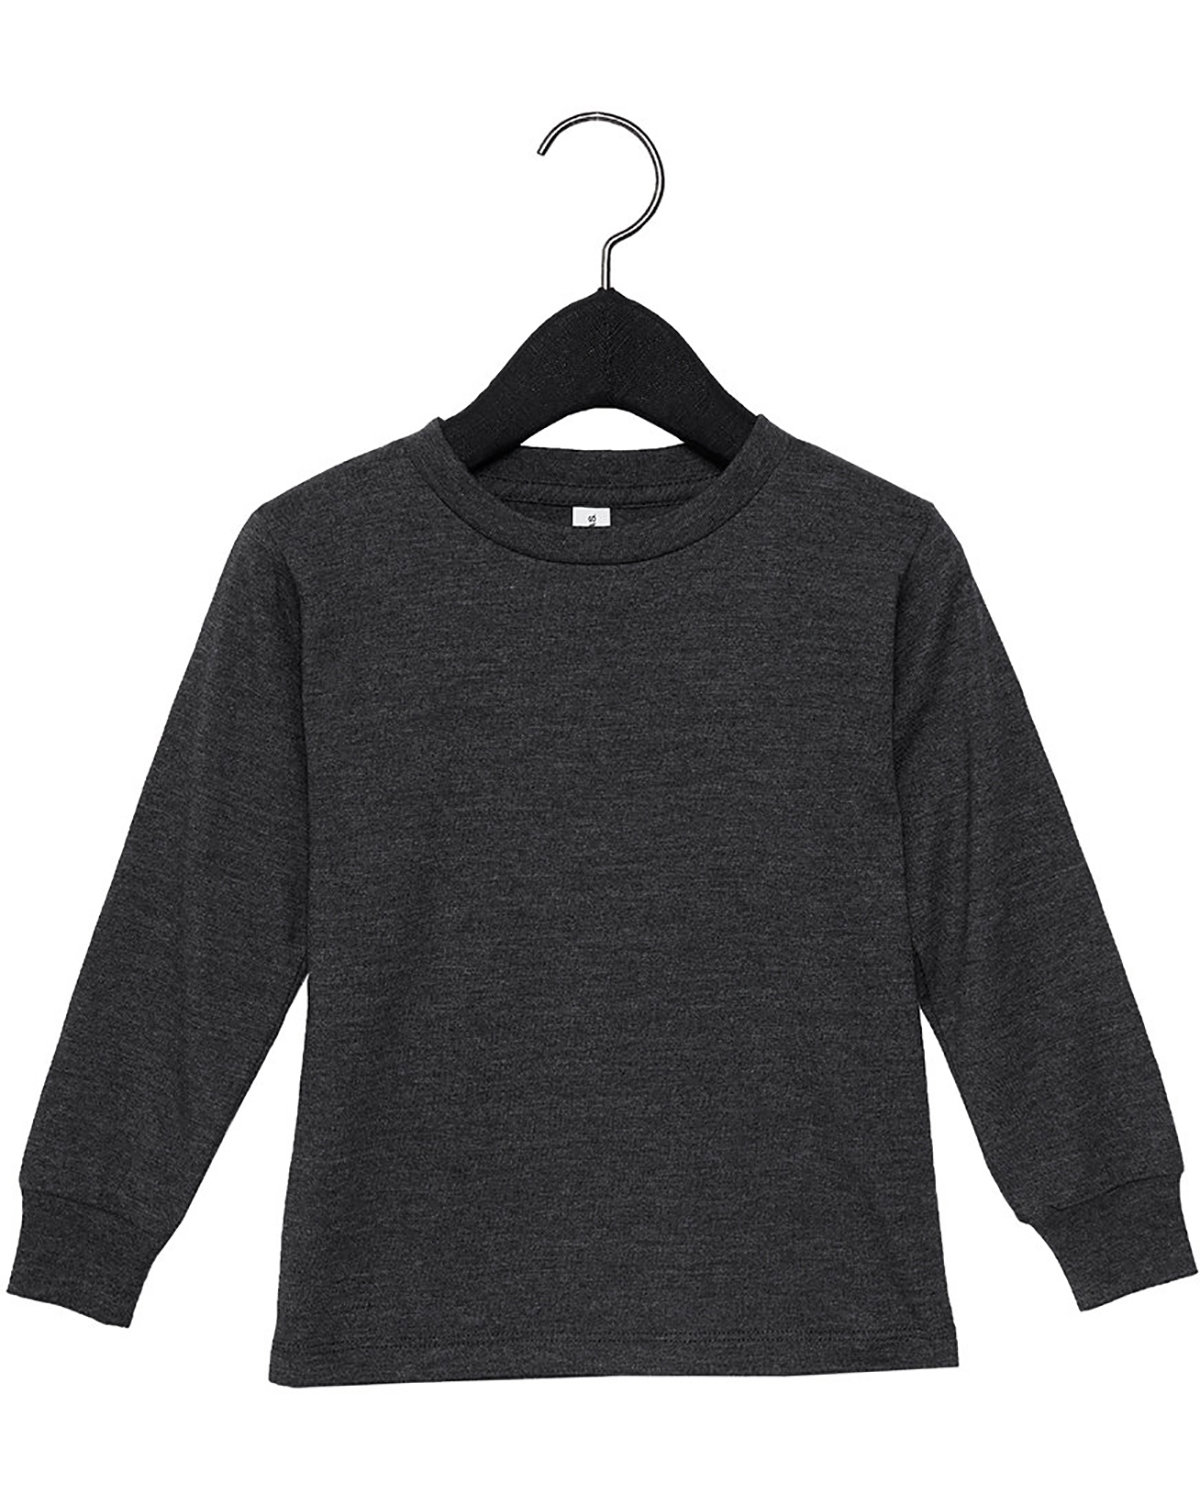 Bella + Canvas Youth Toddler Jersey Long Sleeve T-Shirt DARK GRY HEATHER